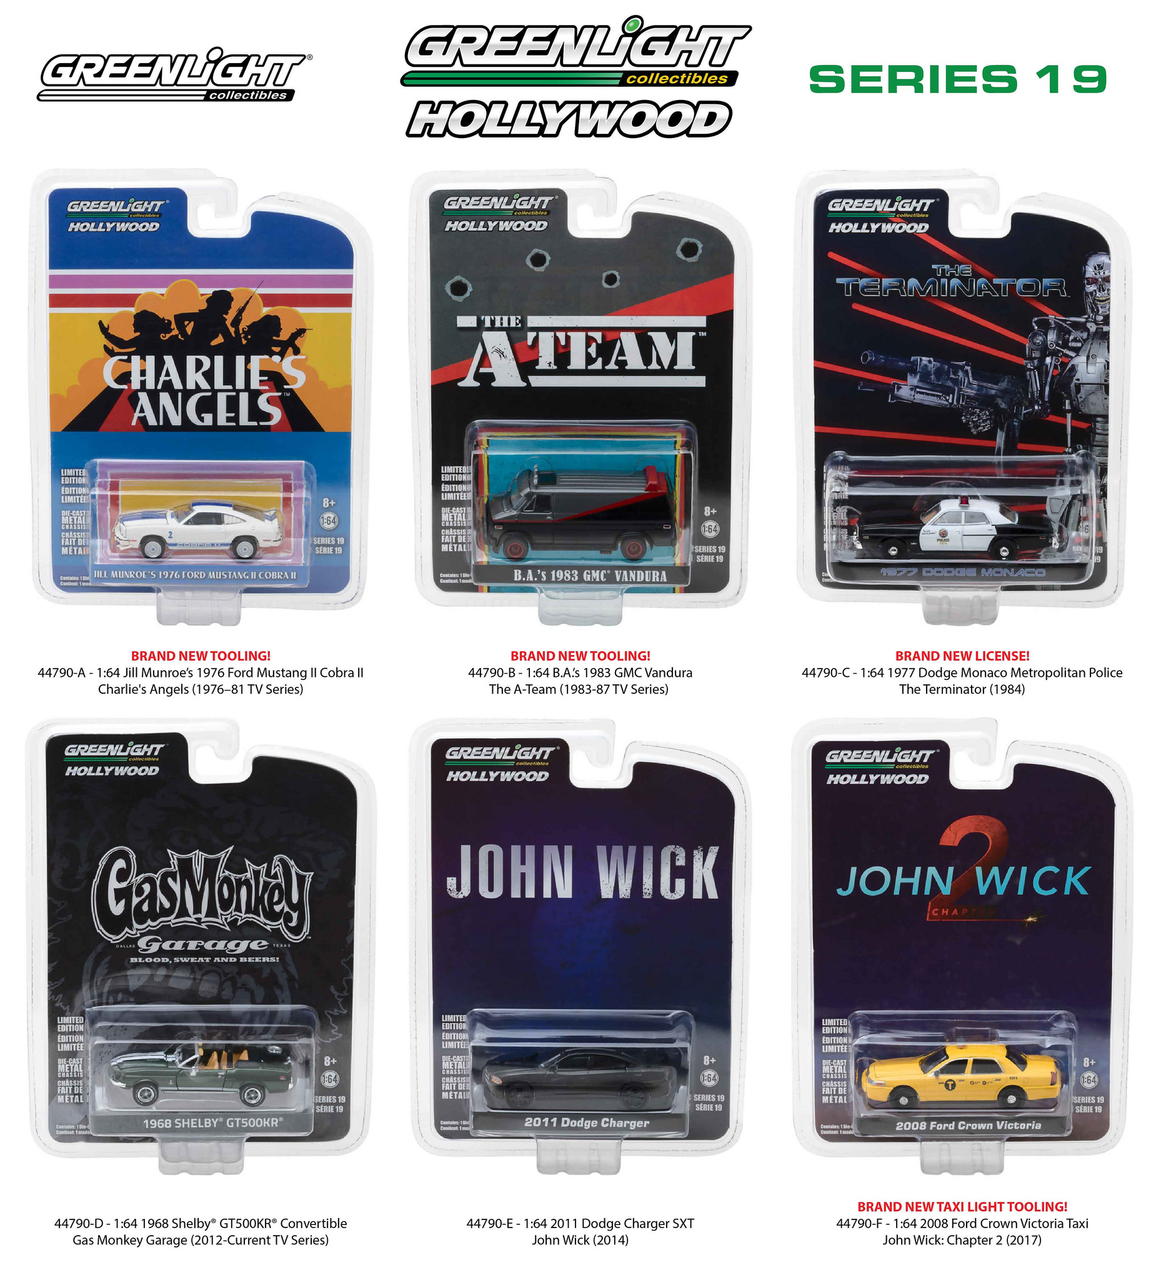 Brand new 1:64 scale diecast car models of Hollywood Series / Release 19 6pc Set die cast car models by Greenlight.Brand new boxes.Limited edition.Has rubber tires.Detailed exteriors.Officially licensed product.Die cast metal body and chassis.Each model is packed in individual blister pack.Dimensions of each car is approximately L-2 1/2 inches long.Might come with a chase car instead of one of the cars in a set but it is not guaranteed.THIS SET INCLUDES FOLLOWING MODELS:2011 Dodge Charger John Wick Movie (2014).1977 Dodge Monaco The Terminator Movie (1984).B.As 1983 GMC Vandura The A Team (1983-1987 TV Series).2008 Ford Crown Victoria New York City Taxi John Wick Chapter:2 Movie (2017).Jil Munroes Ford Mustang II Cobra II White Charlies Ang